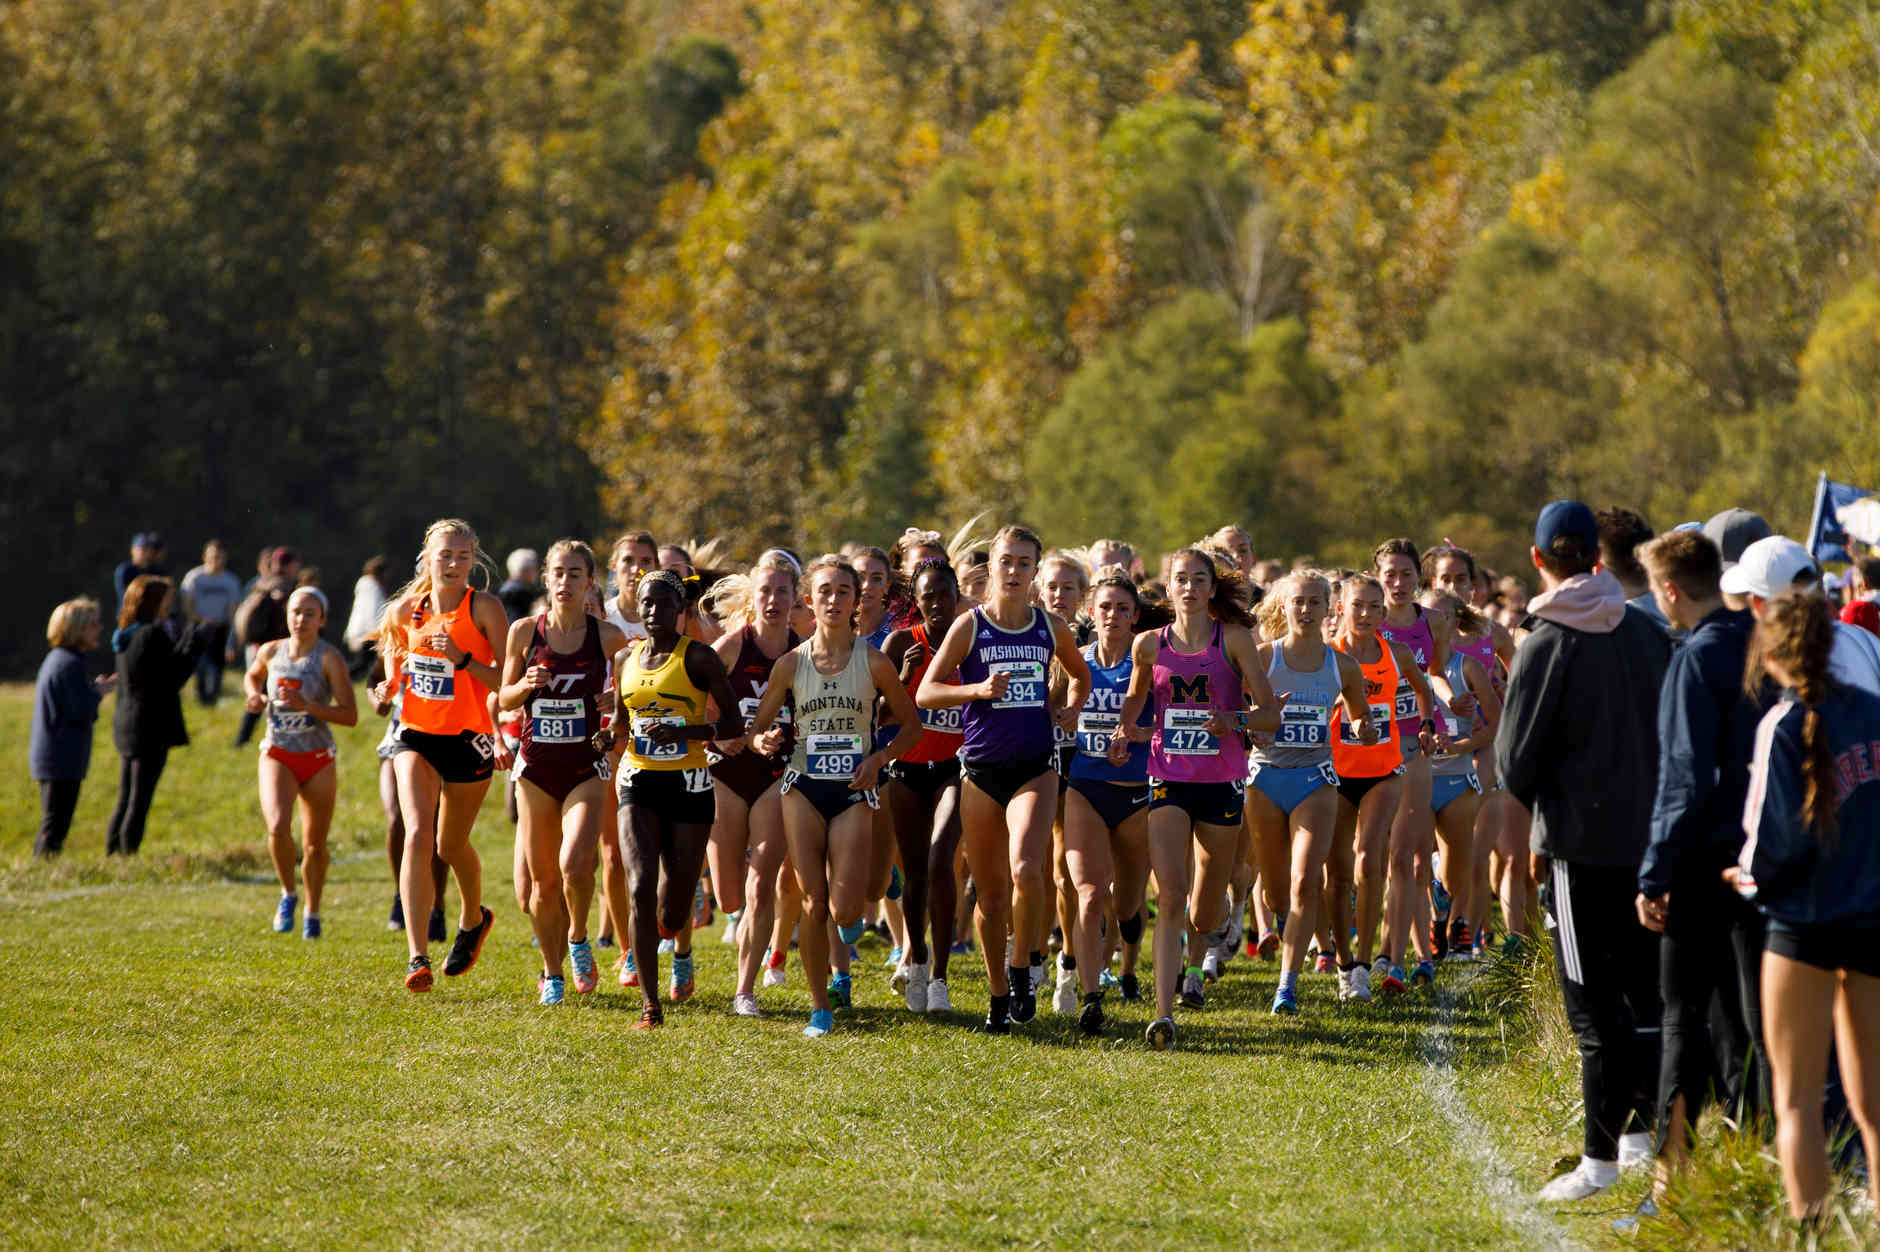 Michigan's Ericka VanderLende (472) leads the pack during the Indiana State Pre-National Cross Country Invitational in Terre Haute, Indiana on Saturday, Oct. 19, 2019. (Photo by James Brosher)